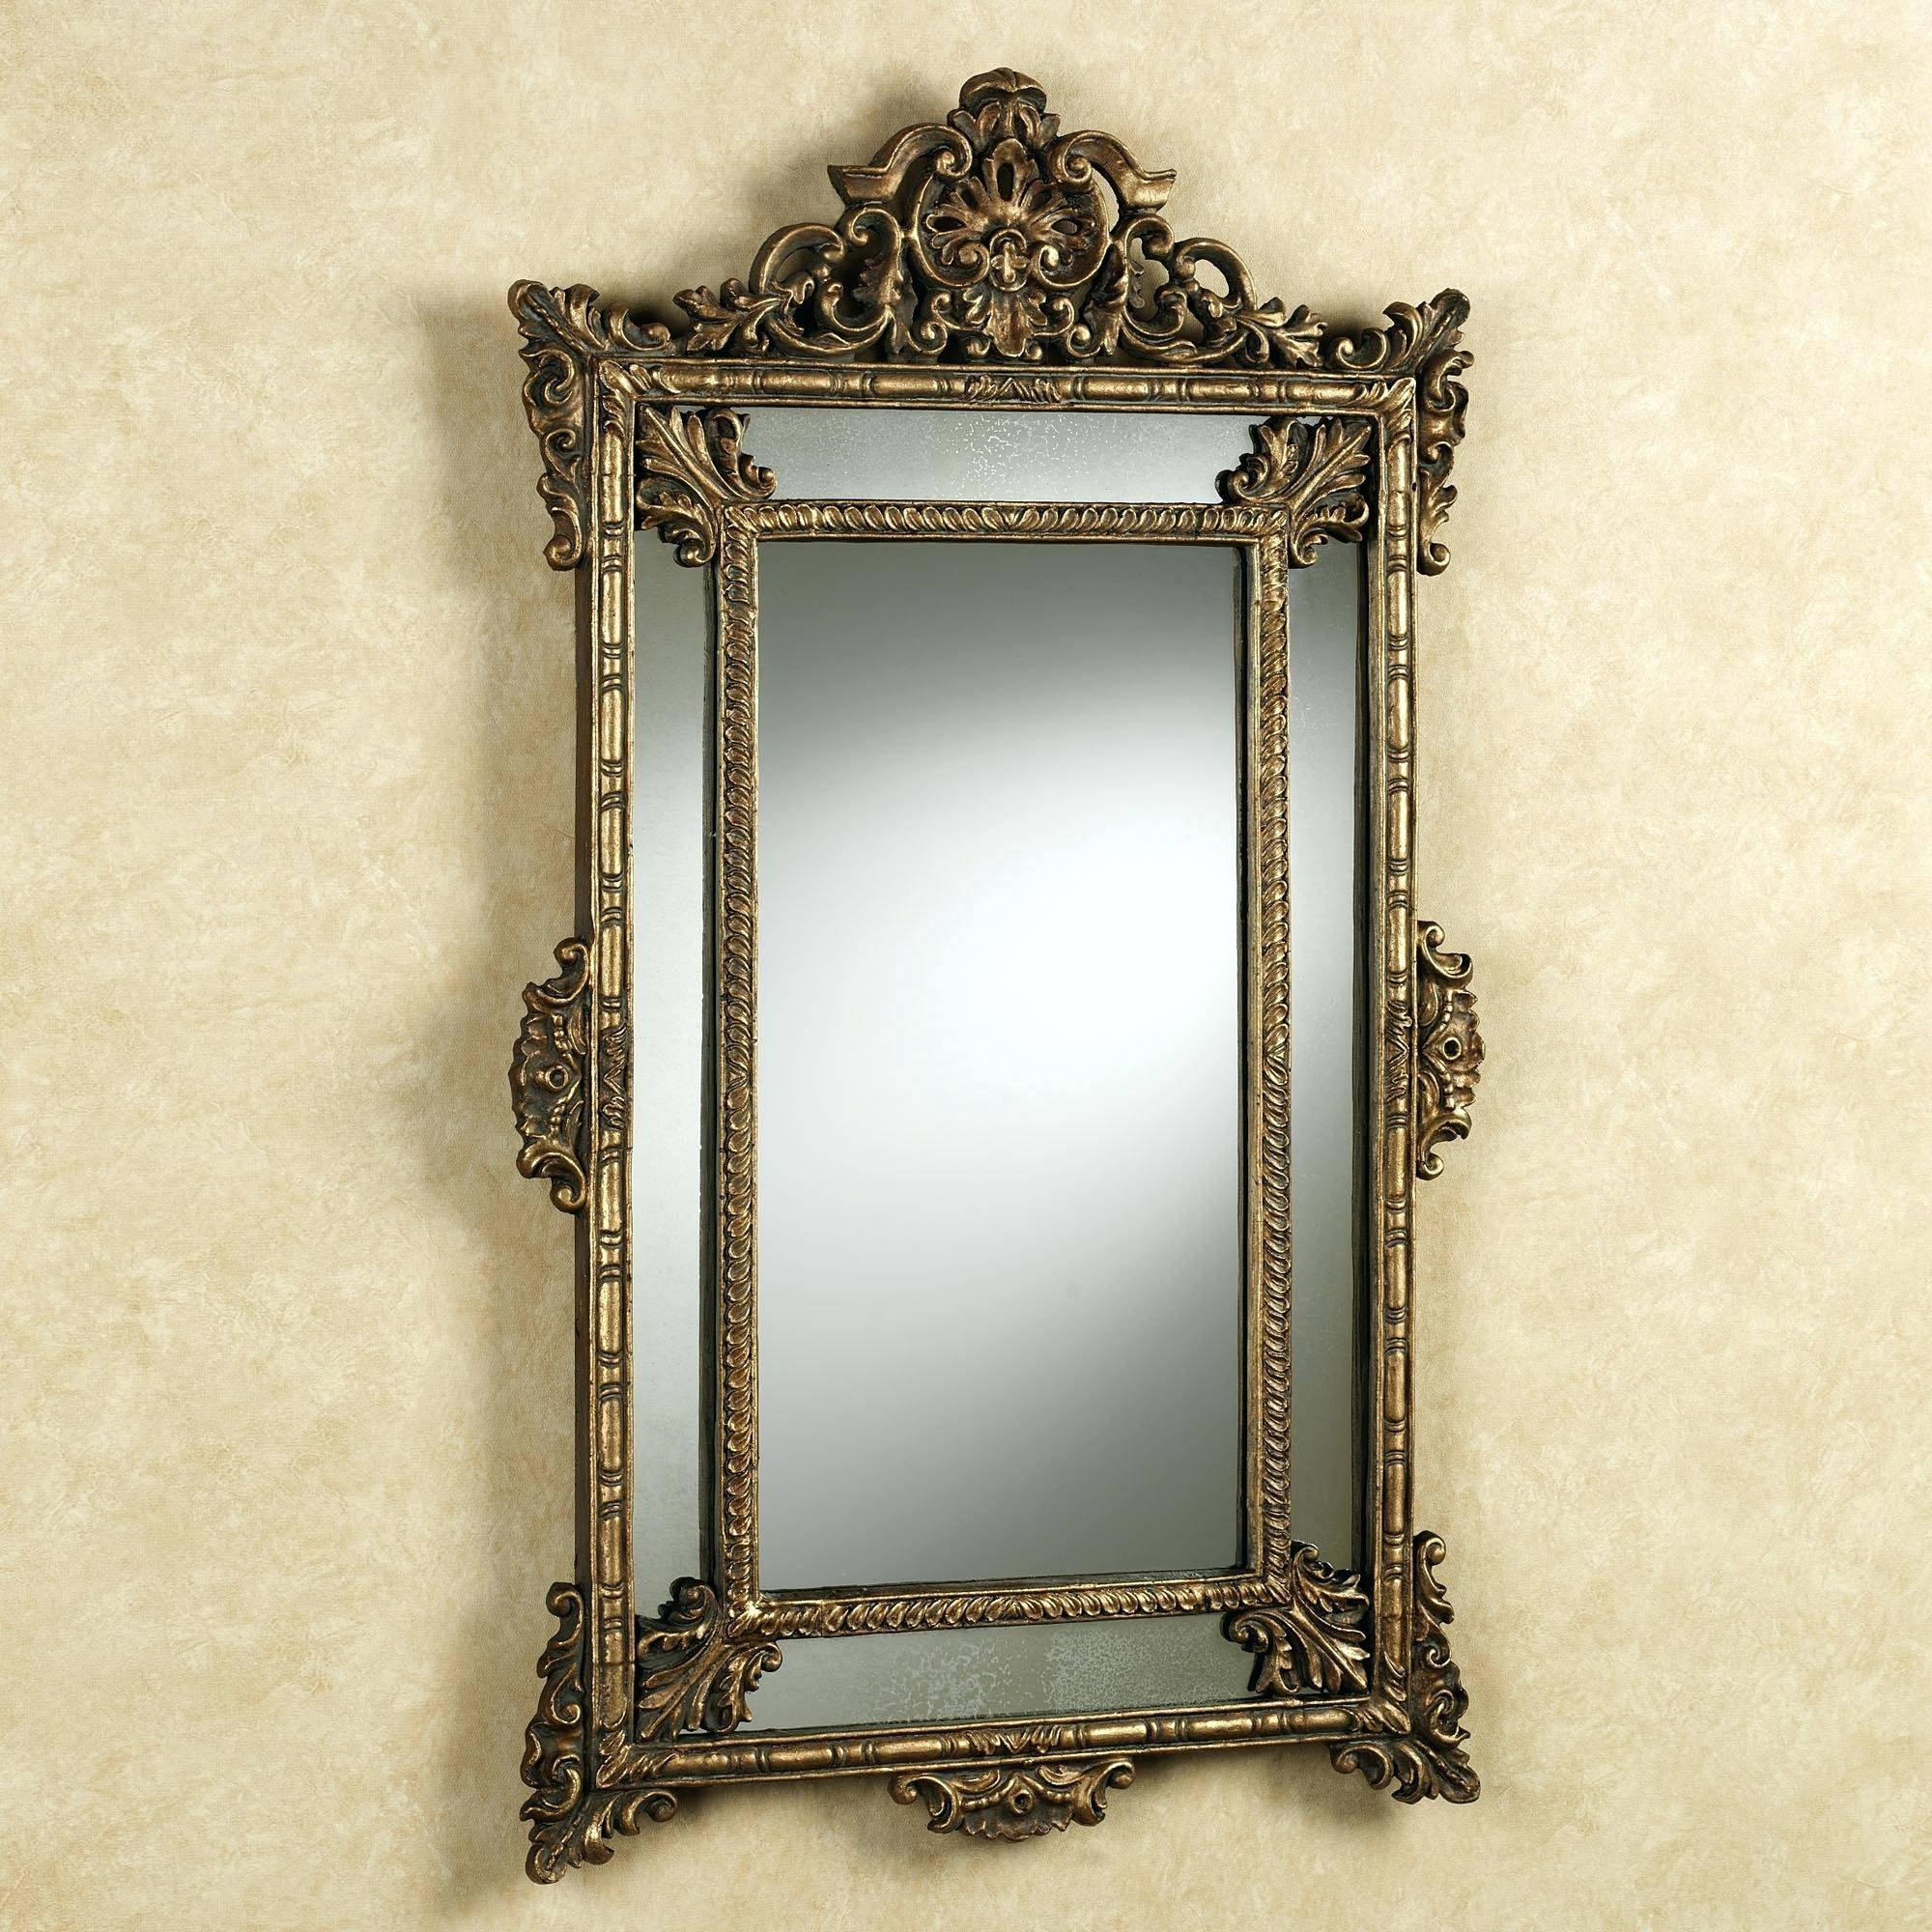 Antique Silver Wall Mirrorantique Mirrors Uk Large Vintage with regard to Vintage Silver Mirrors (Image 8 of 25)